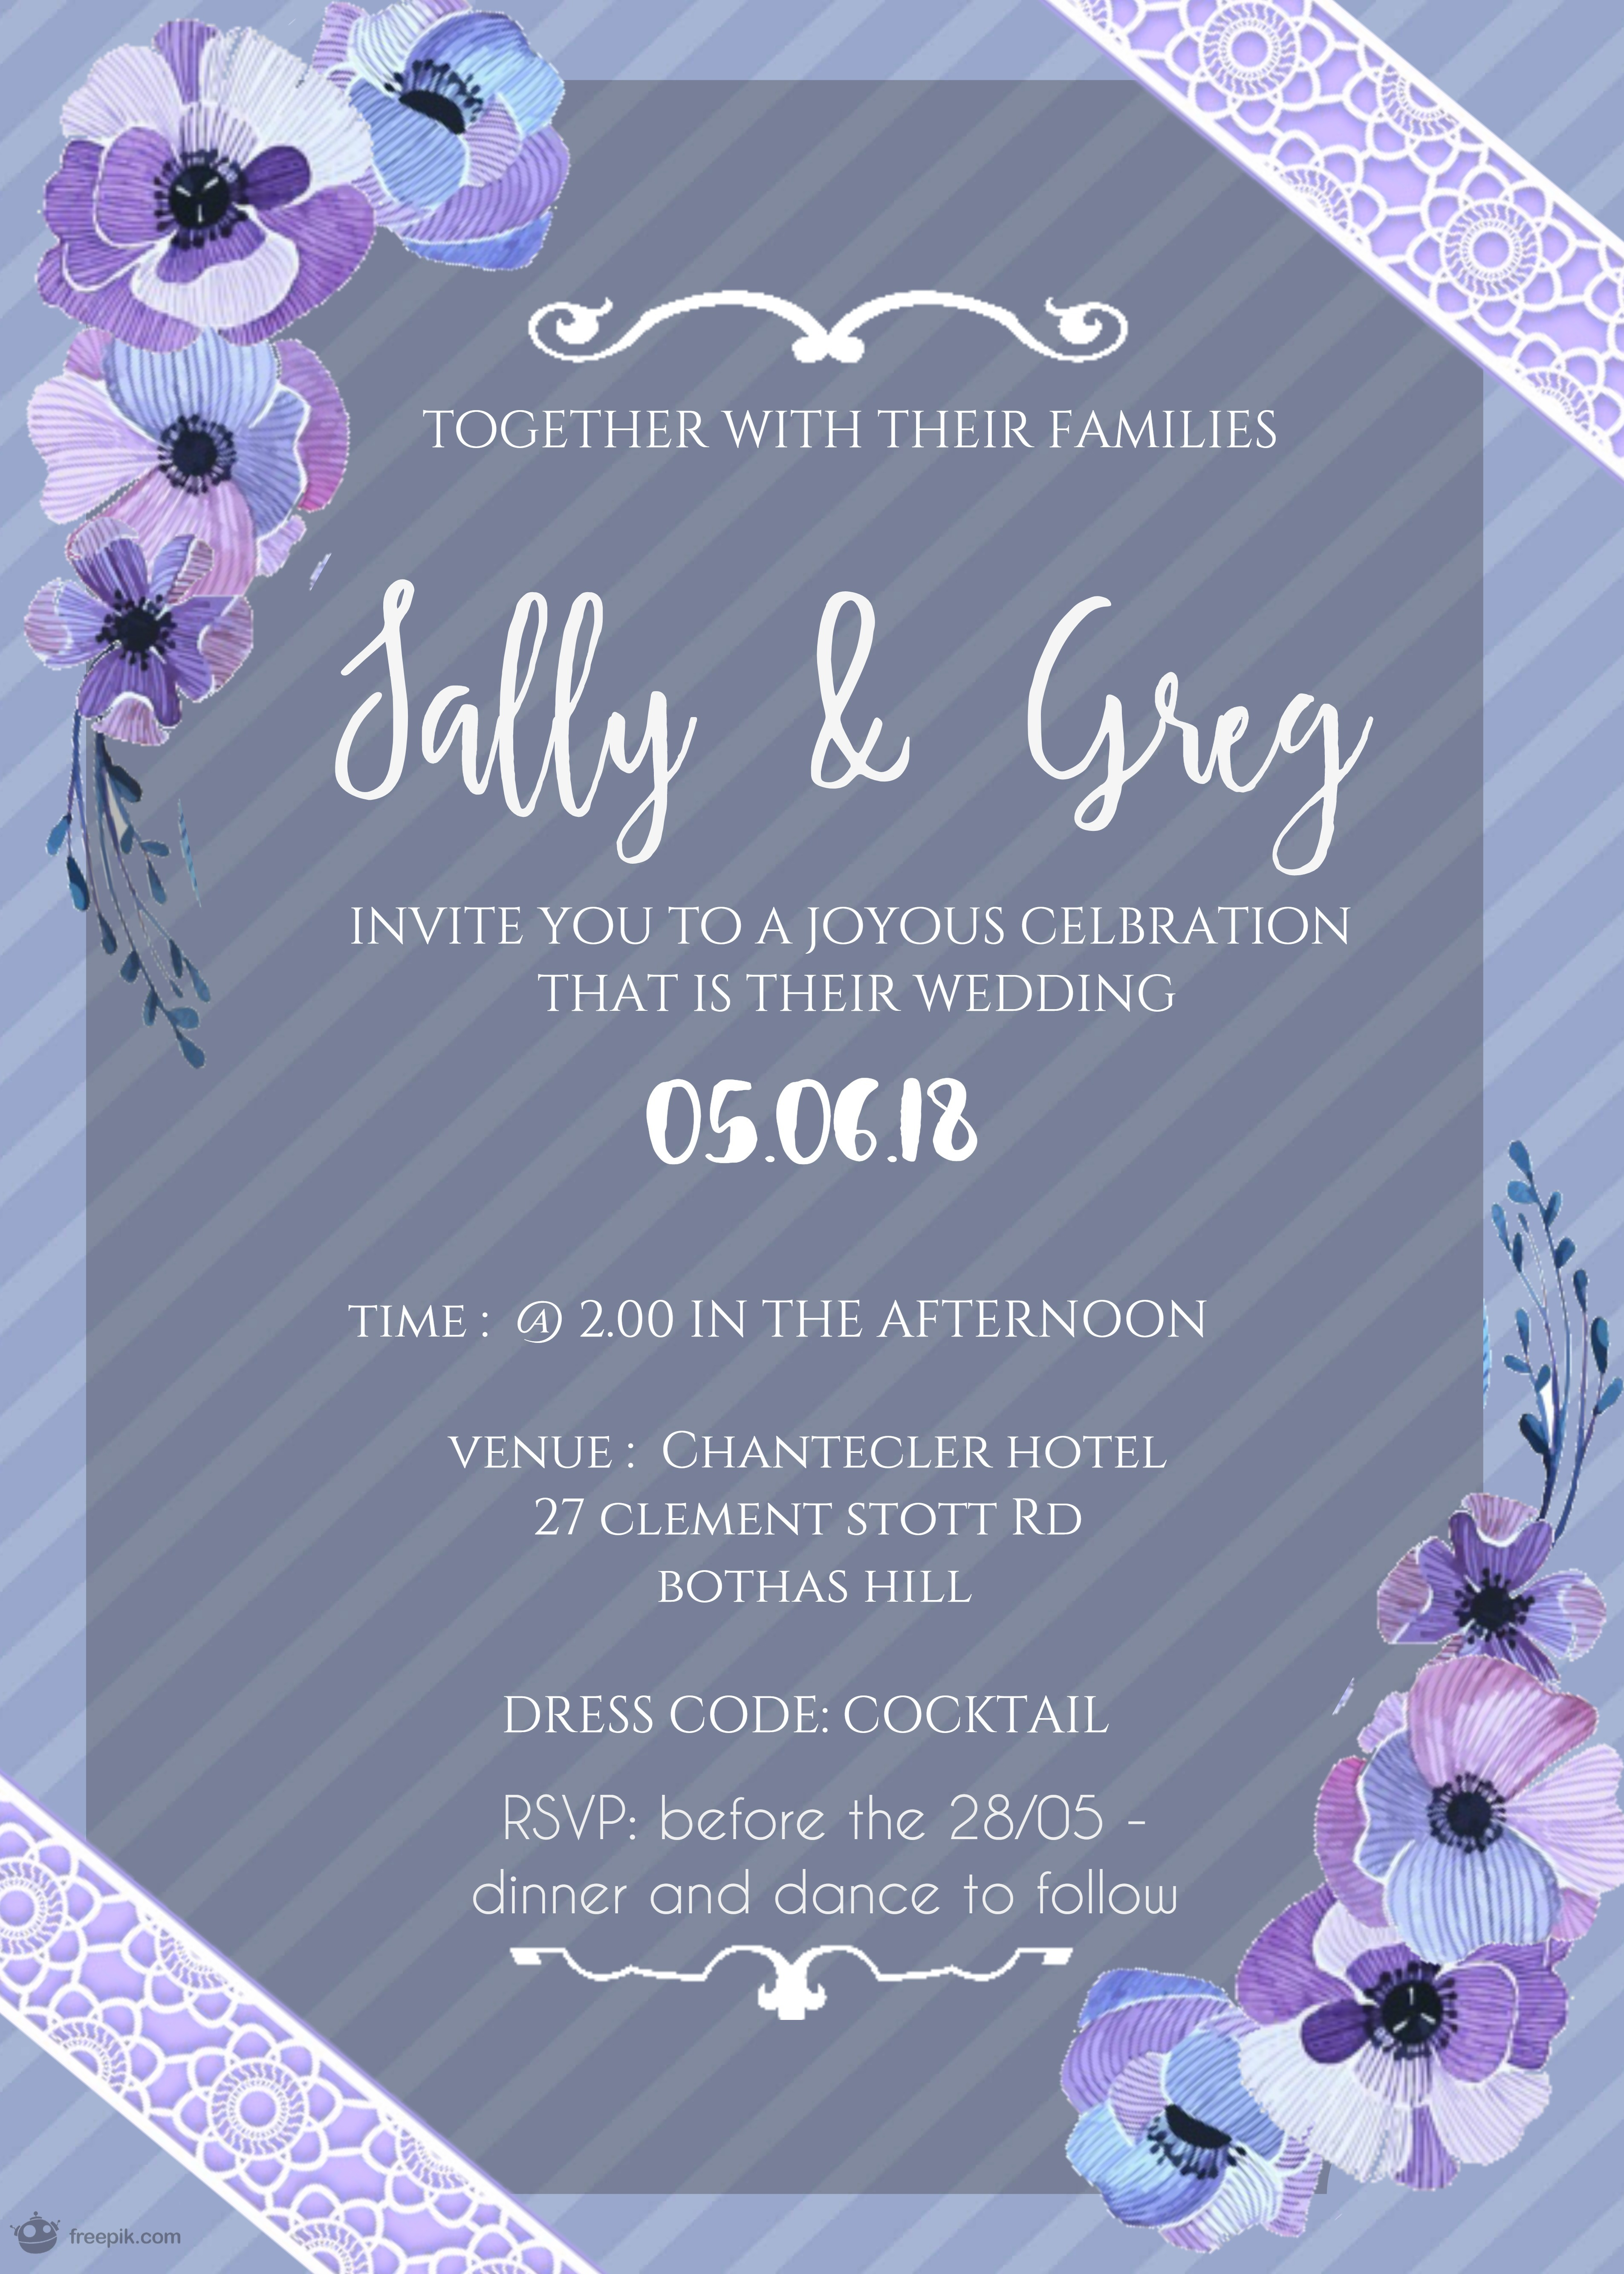 To design a custom wedding invitation Incl free label design and save the date card for FREE